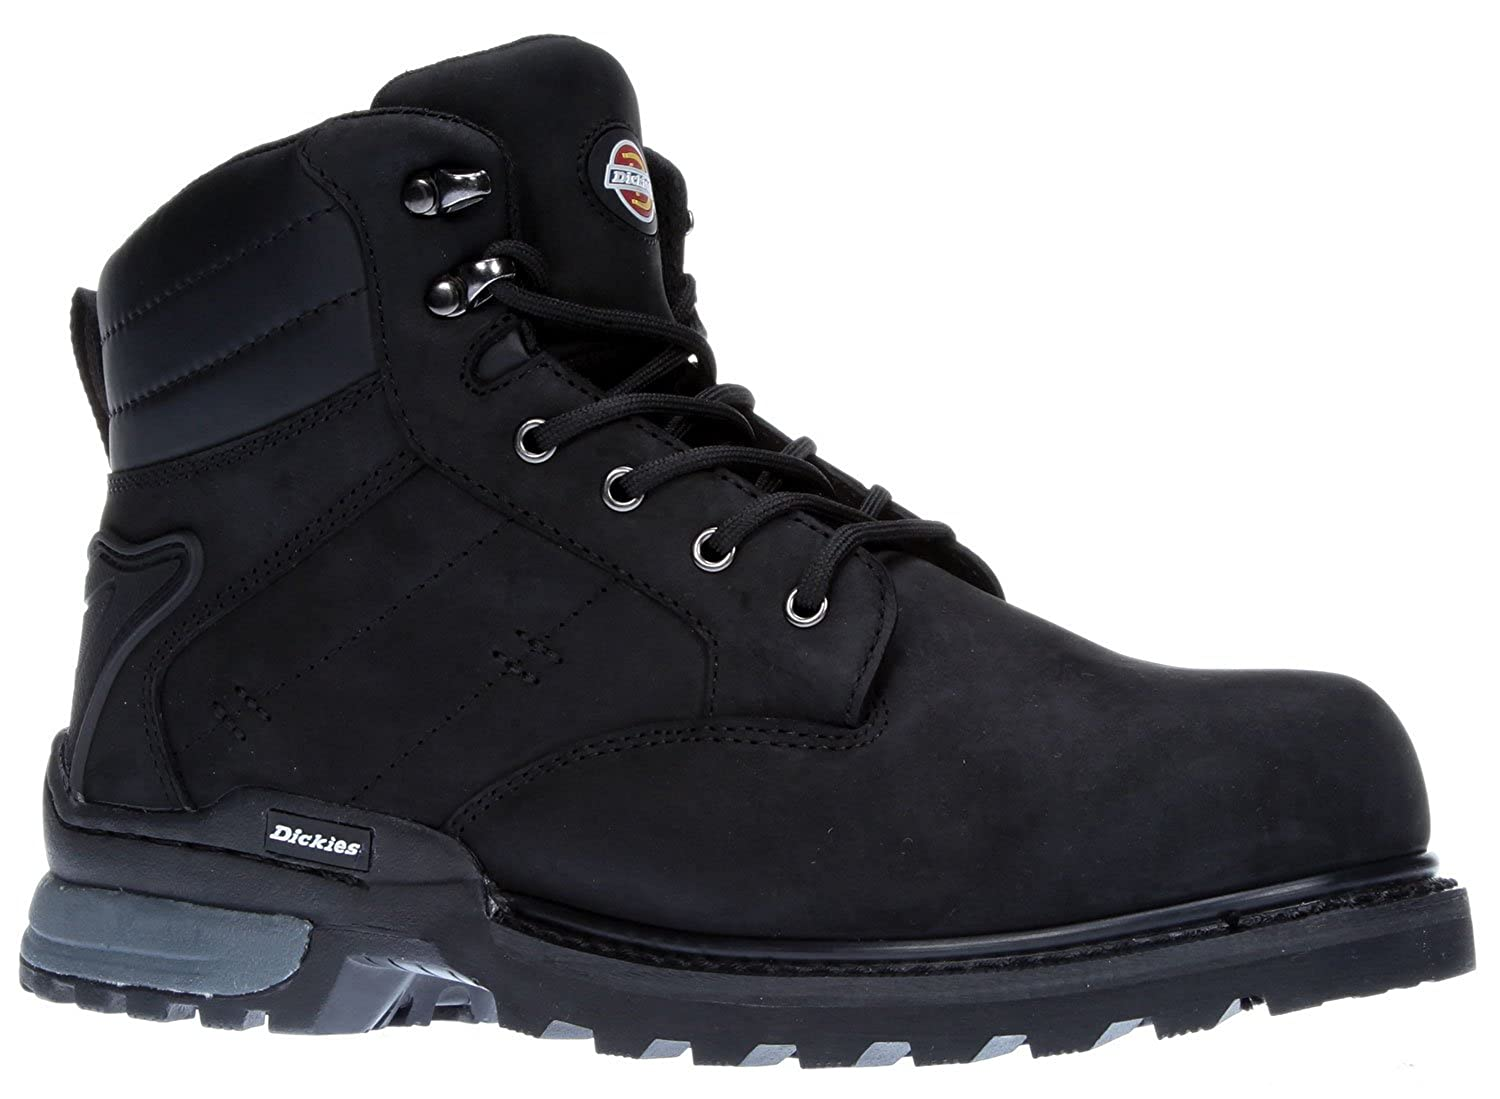 b84984b2d8b Dickies Mens Breathable Work Safety Boots Shoes Steel Toe Cap ...